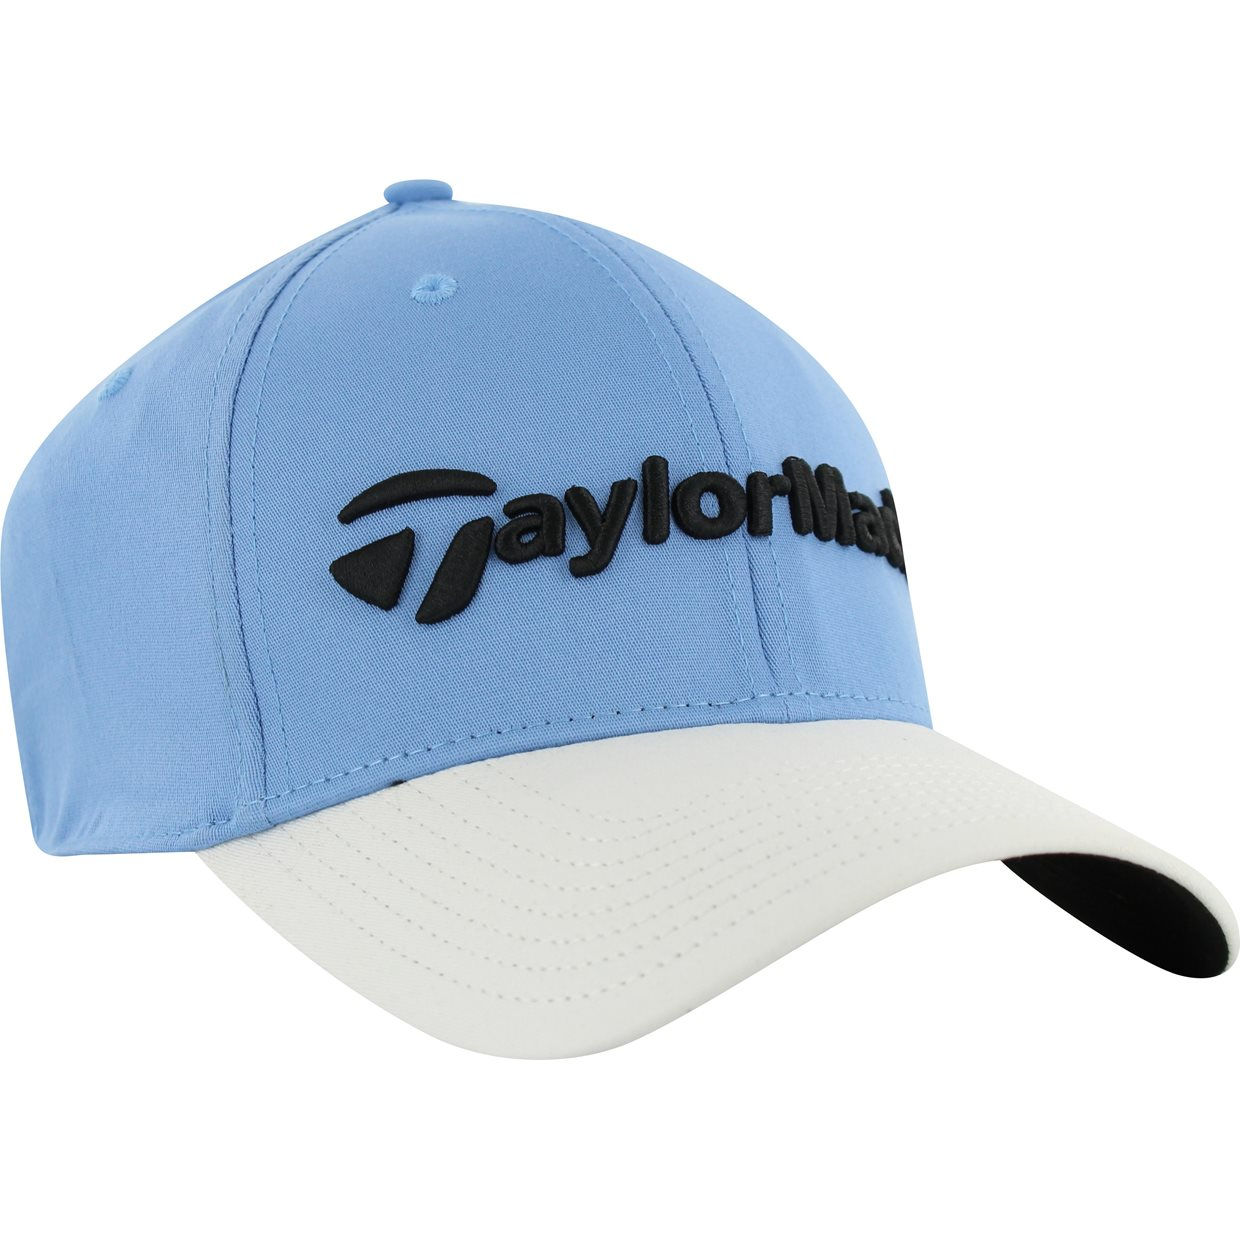 239cacc38f0 TaylorMade Lifestyle New Era 39Thirty Headwear Apparel at GlobalGolf.com